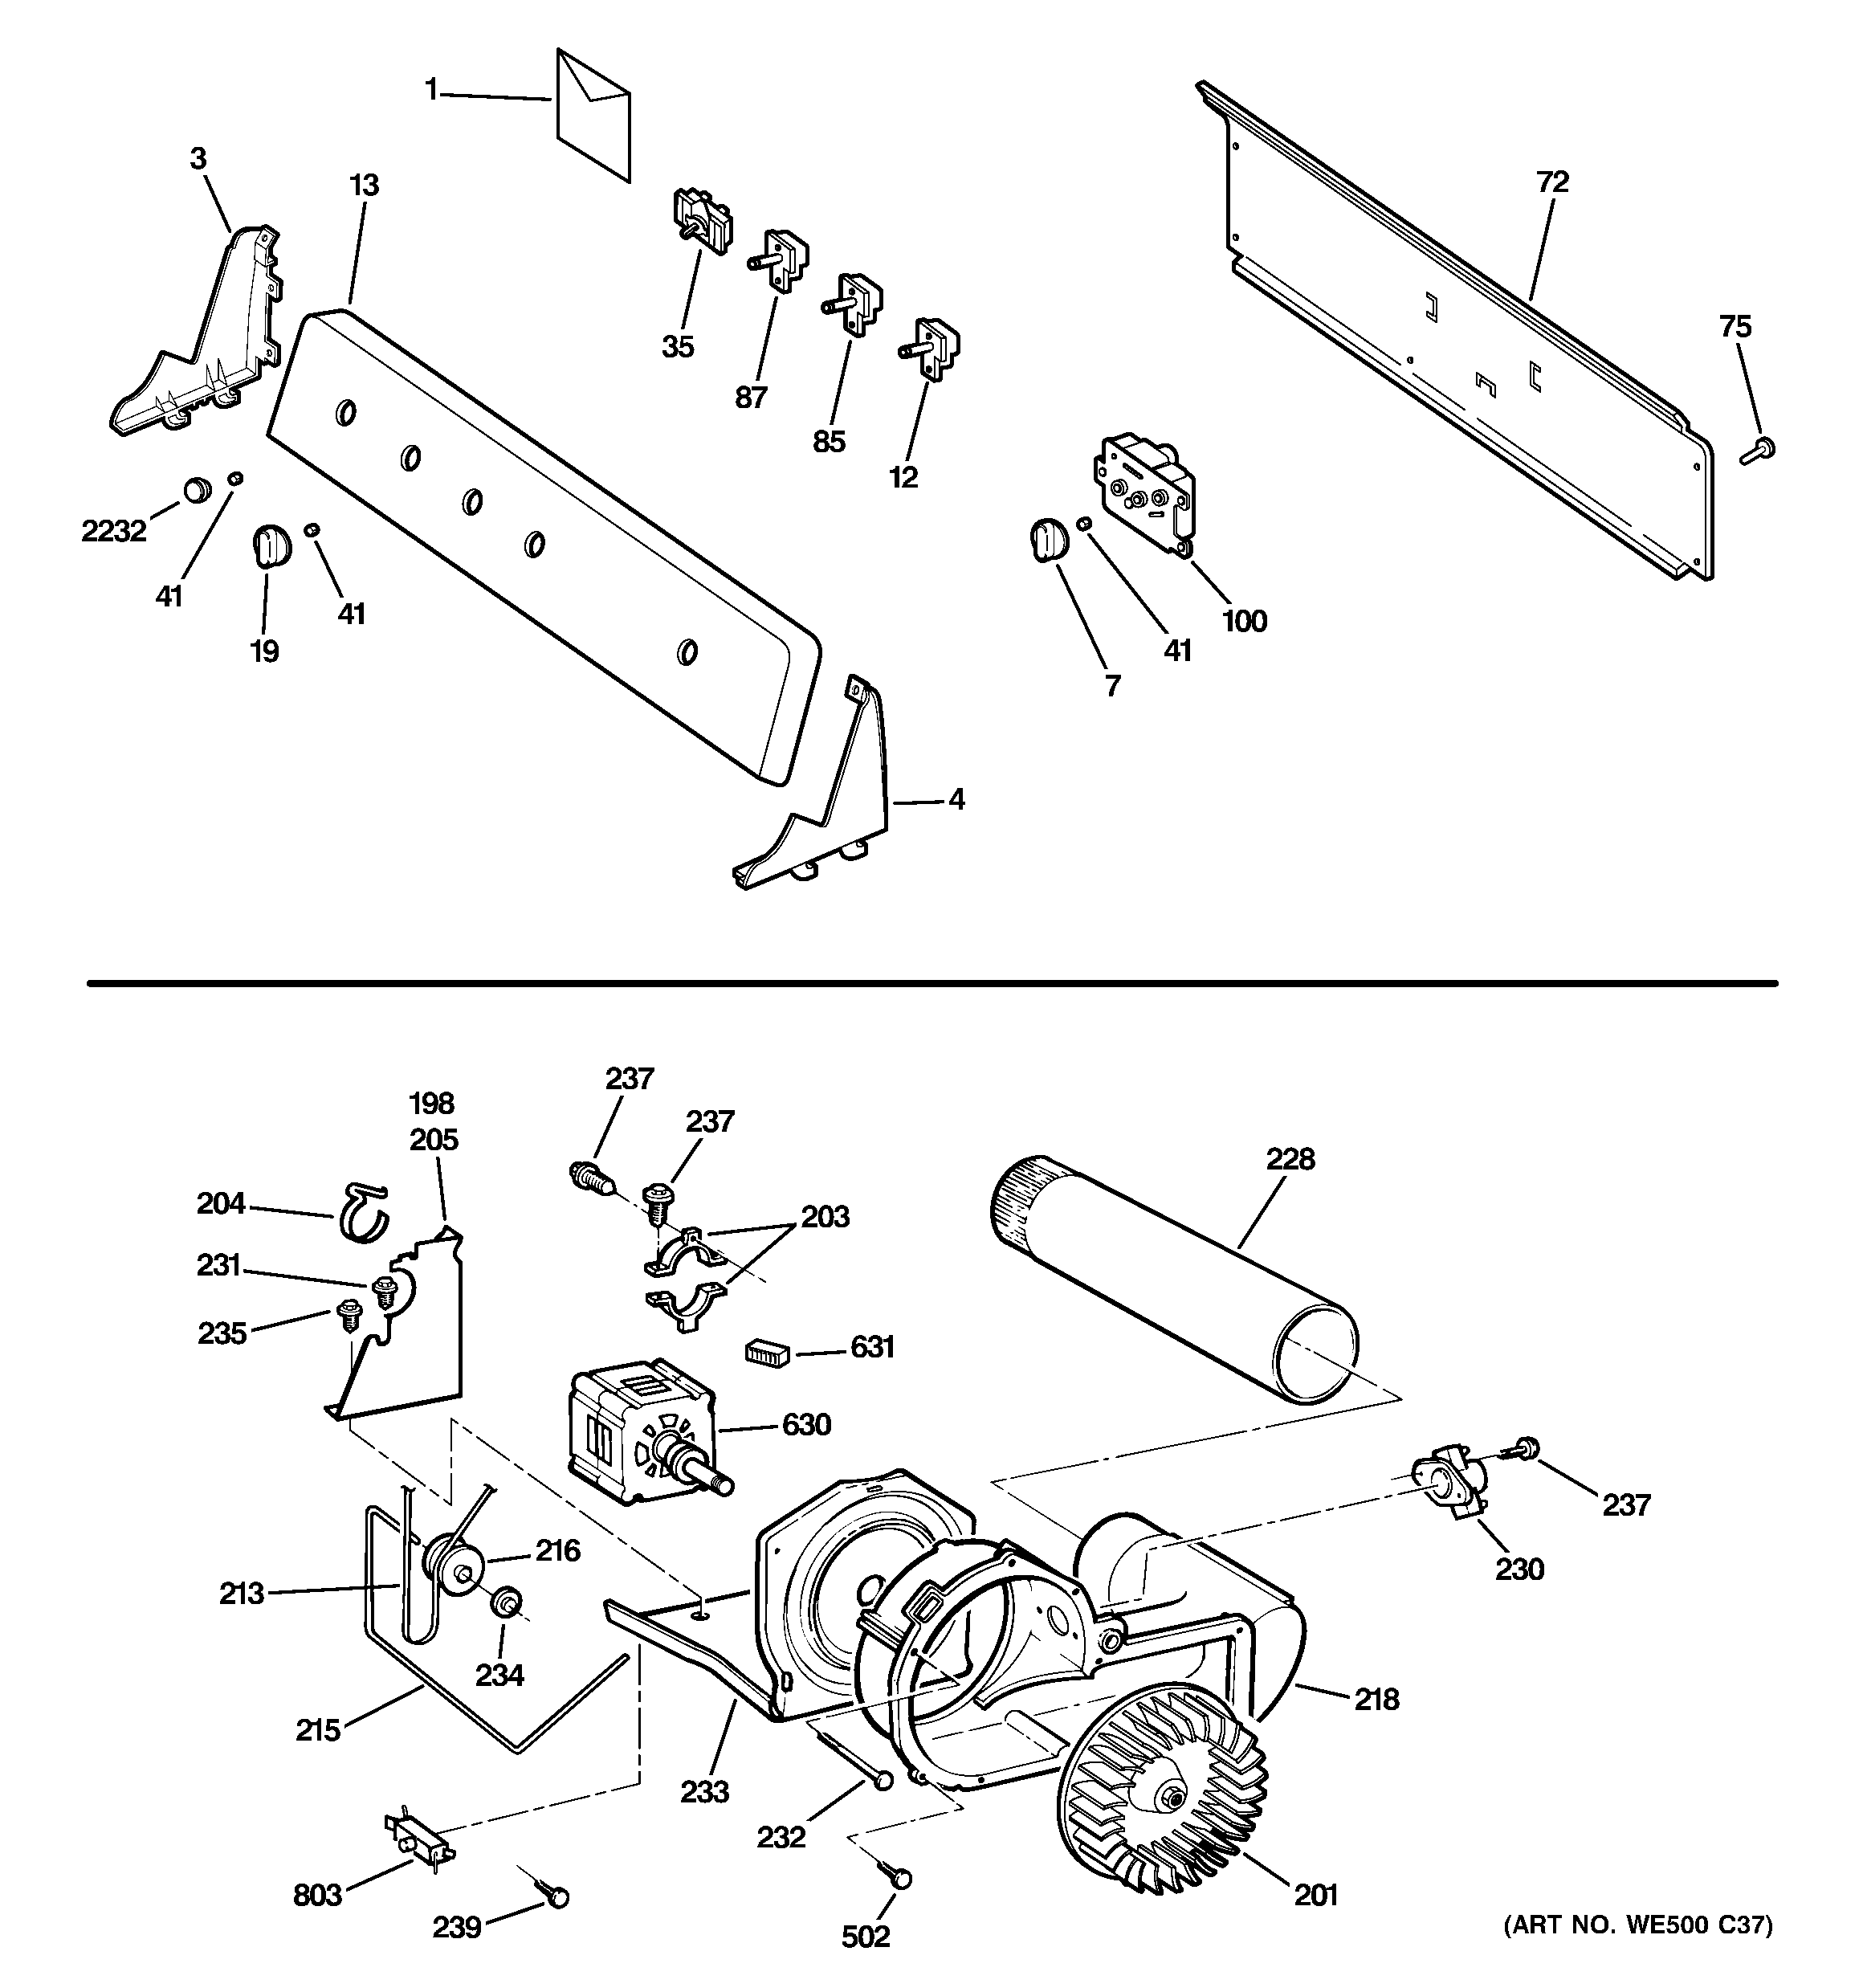 Hotpoint NWXR483EG8WW backsplash, blower & motor assembly diagram